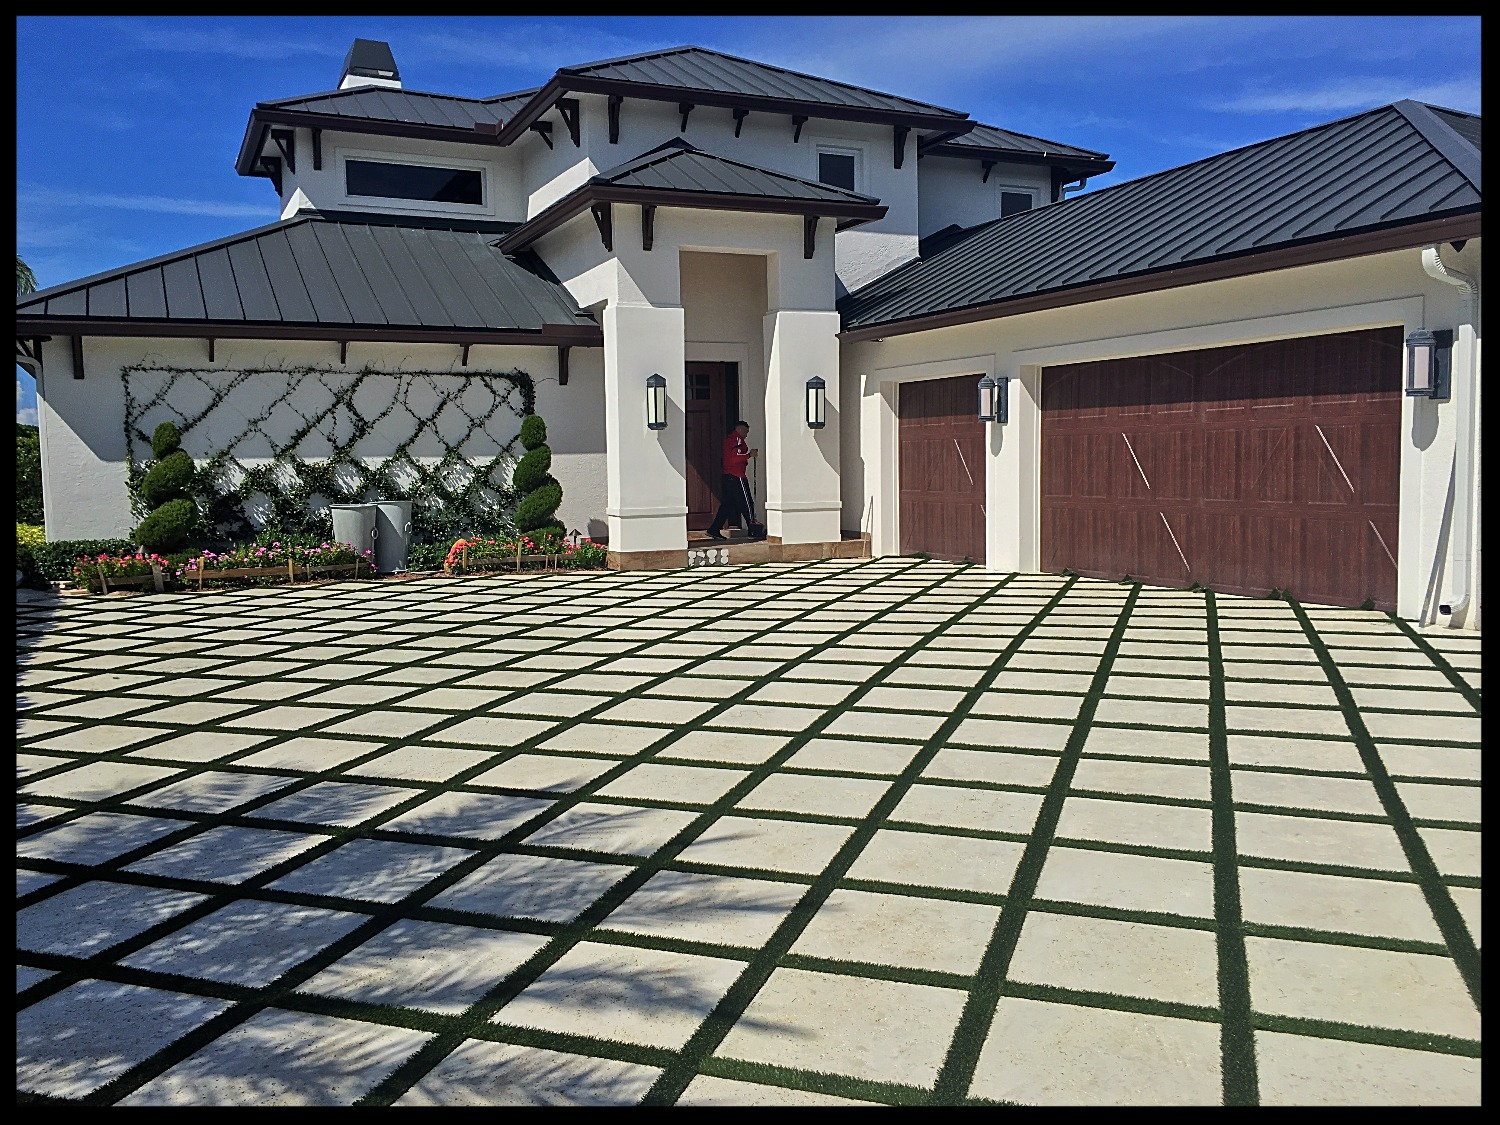 Paver Design and Artificial Turf